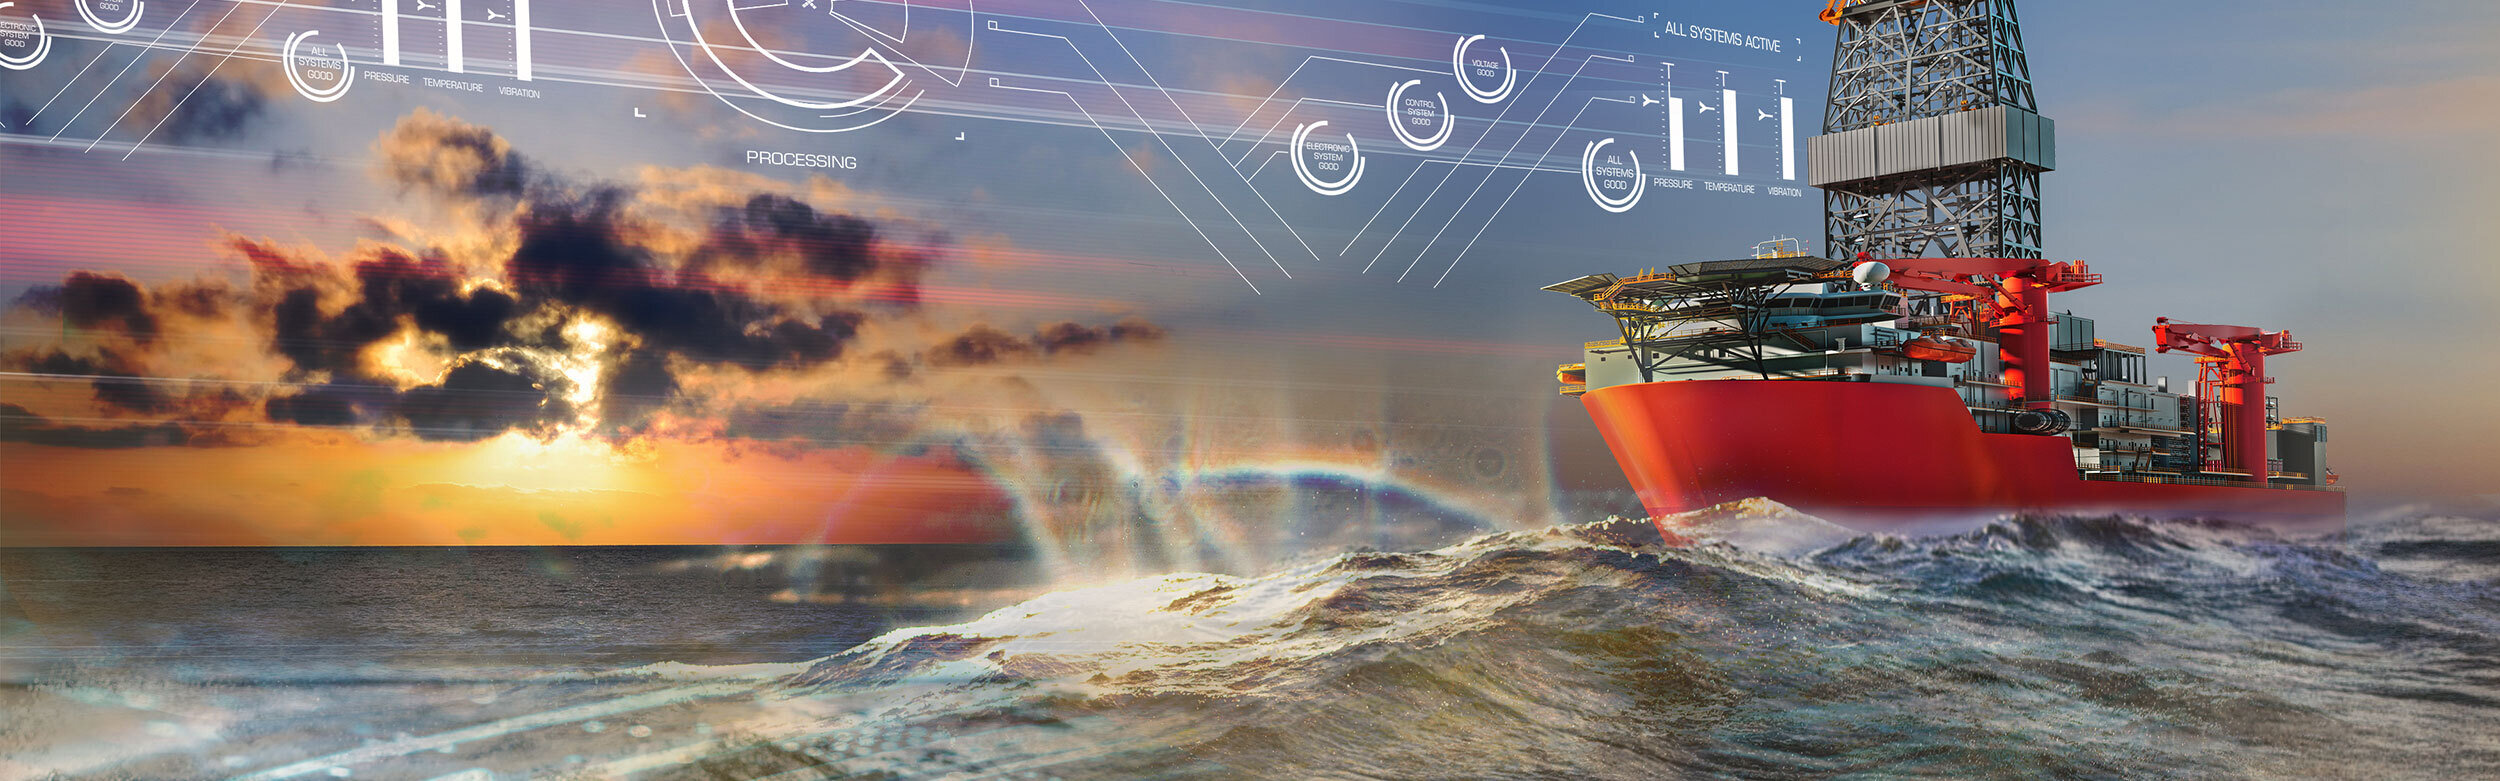 Offshore Technology Conference (OTC) 2021